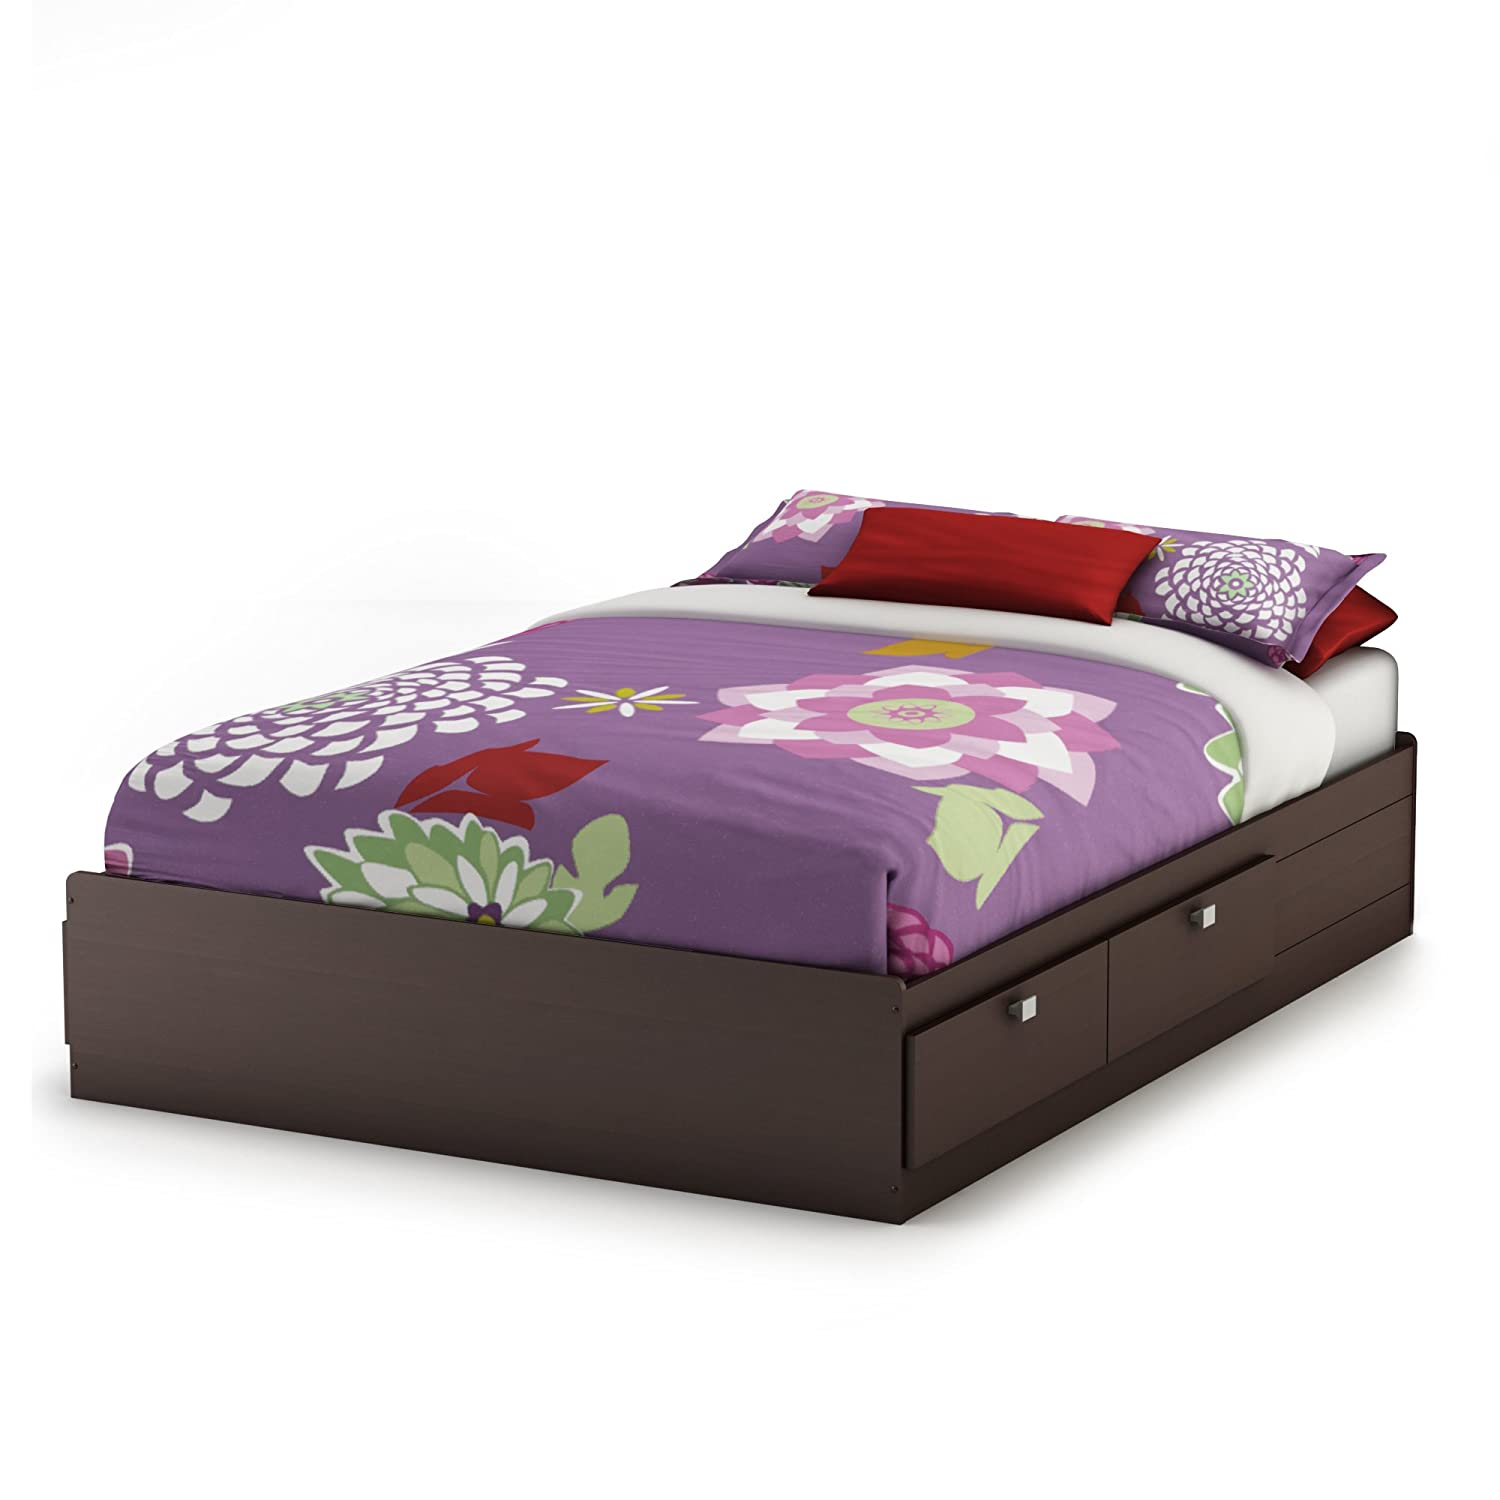 Lesley Bedroom Furniture Collection Amazoncom South Shore Furniture Cakao Collection Full Mates Bed